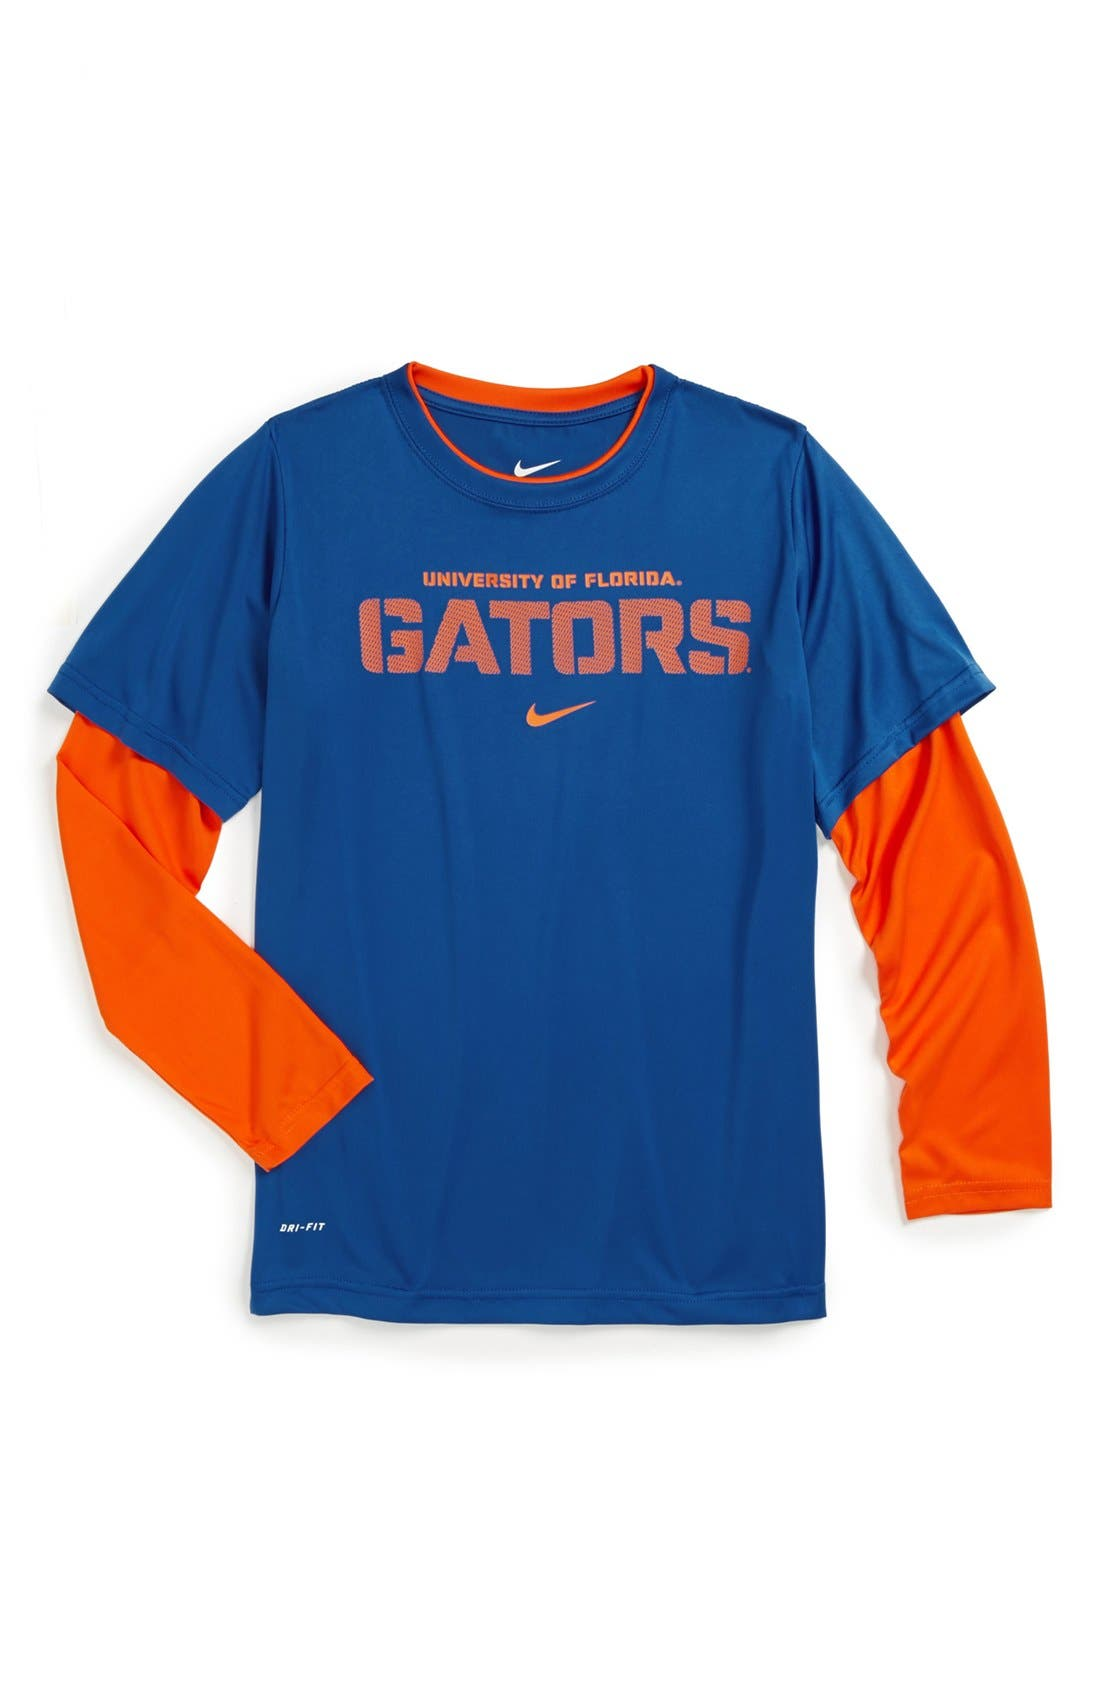 Alternate Image 1 Selected - Nike 'University of Florida Gators' Dri-FIT Layered Sleeve Sport T-Shirt (Big Boys)